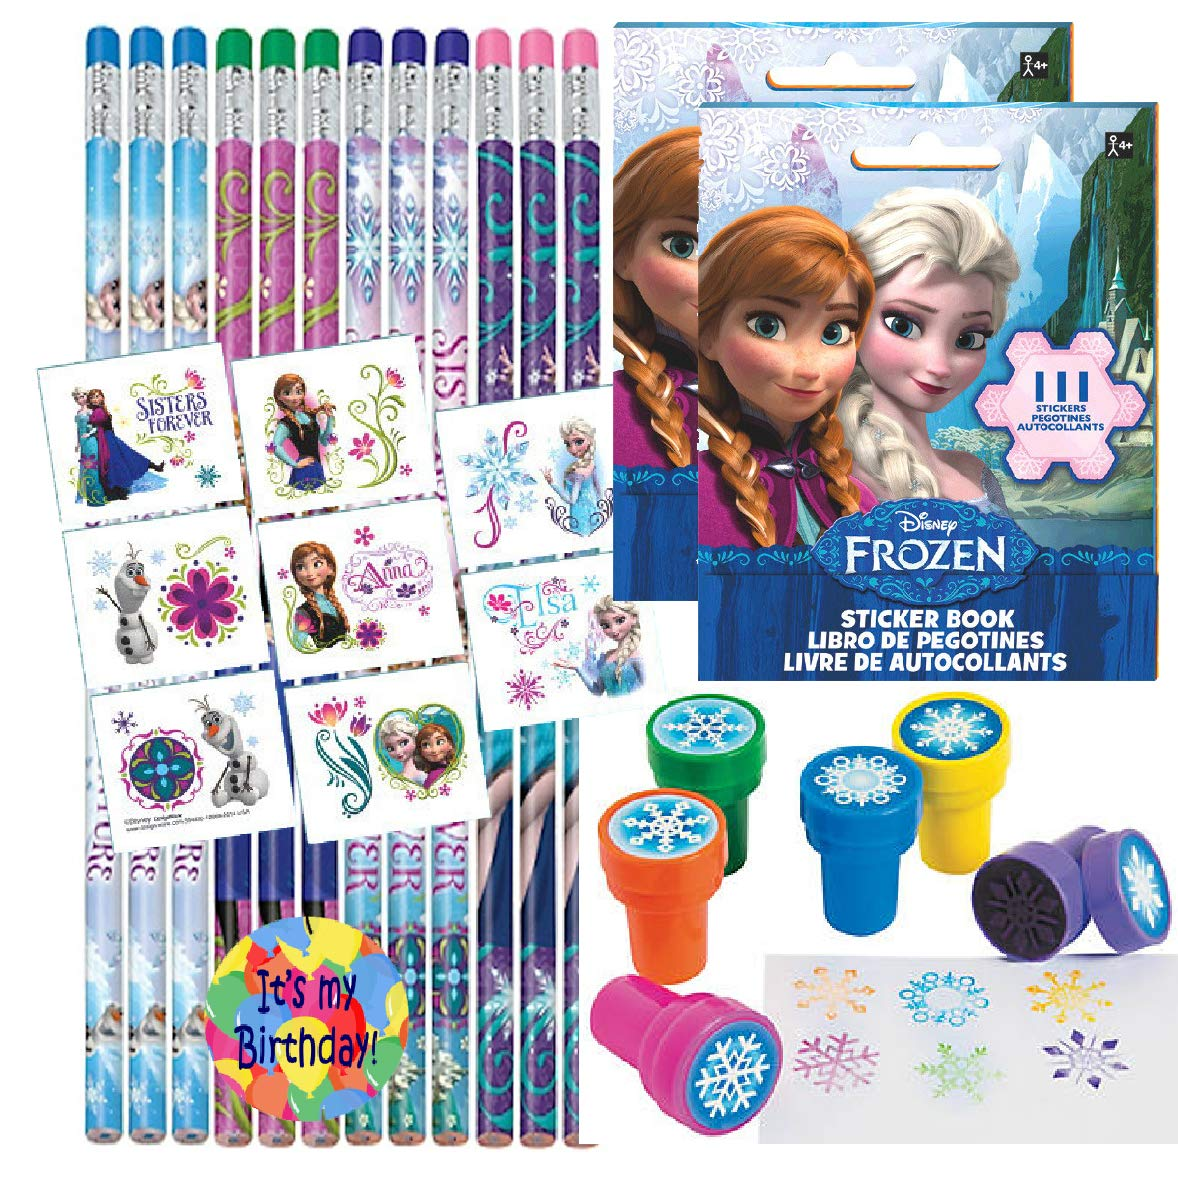 Birthday Party Favor Set for 12 - 12 Frozen Pencils, 16 Frozen Tattoos, 12 Sticker Sheets, 12 Snowflake Stampers by Unknown